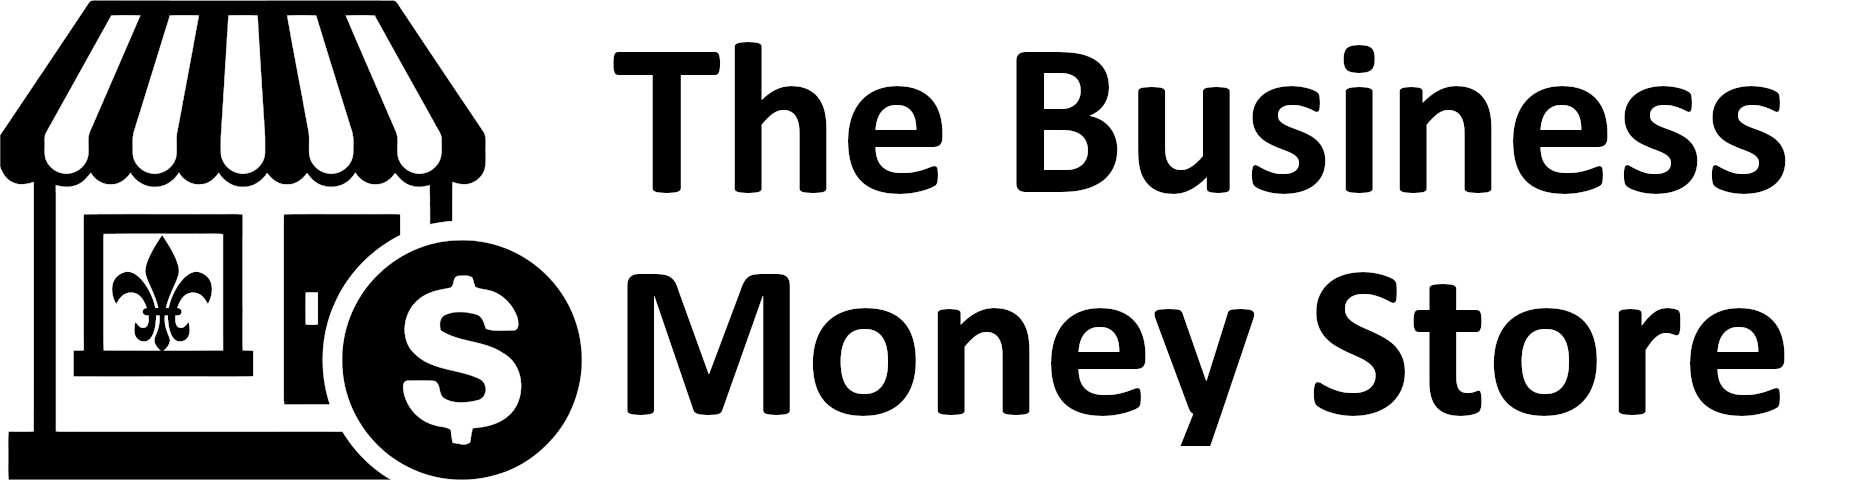 The Business Money Store